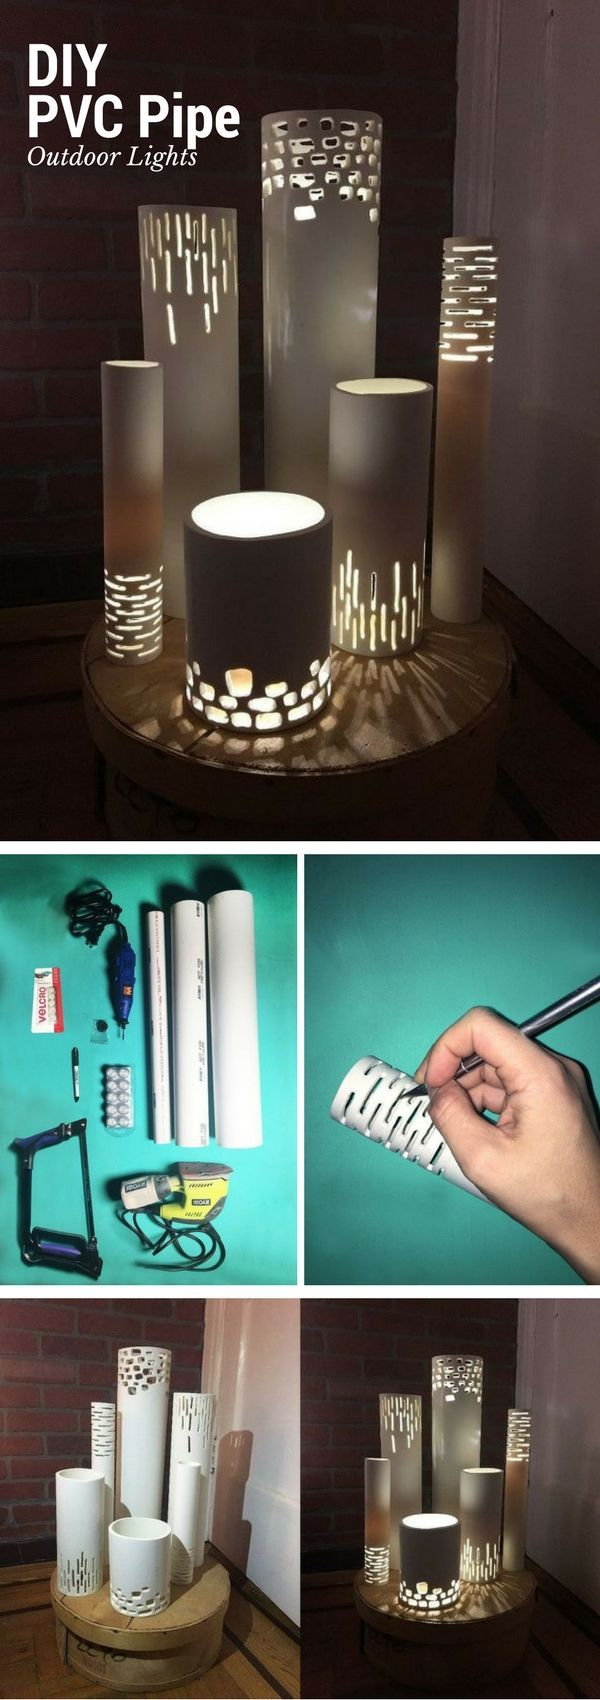 Check out the tutorial on how to make easy DIY outdoor pvc pipe lights {wine glass writer}